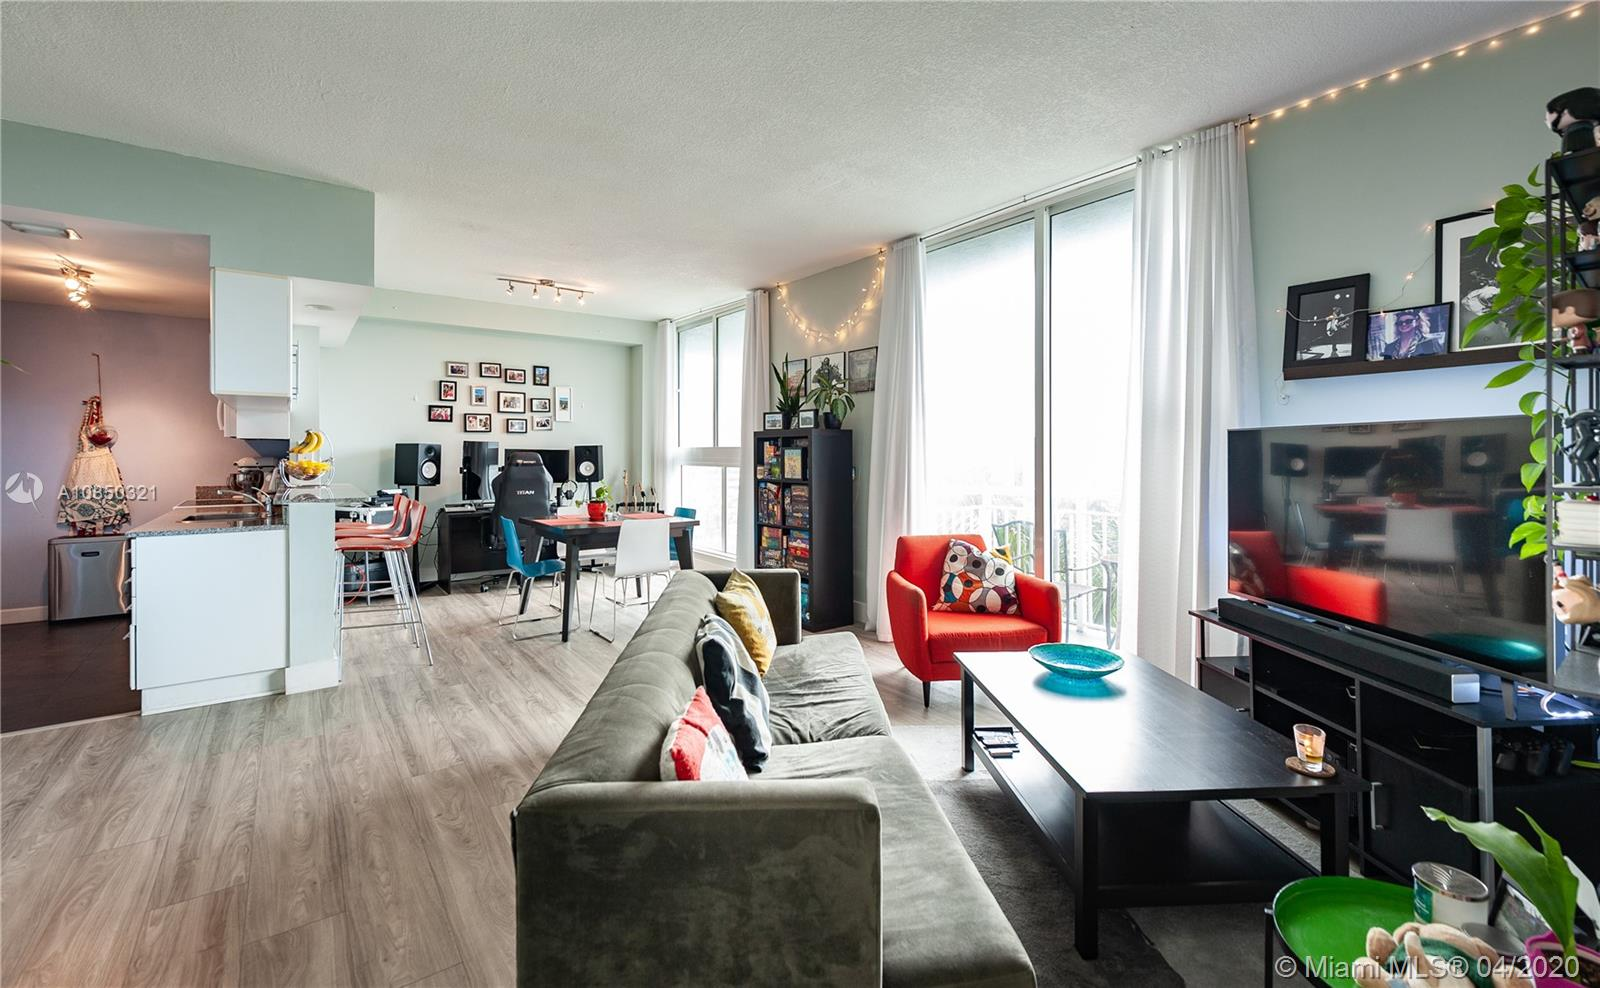 275 NE 18th St # 505, Miami, Florida 33132, 1 Bedroom Bedrooms, ,1 BathroomBathrooms,Residential,For Sale,275 NE 18th St # 505,A10850321